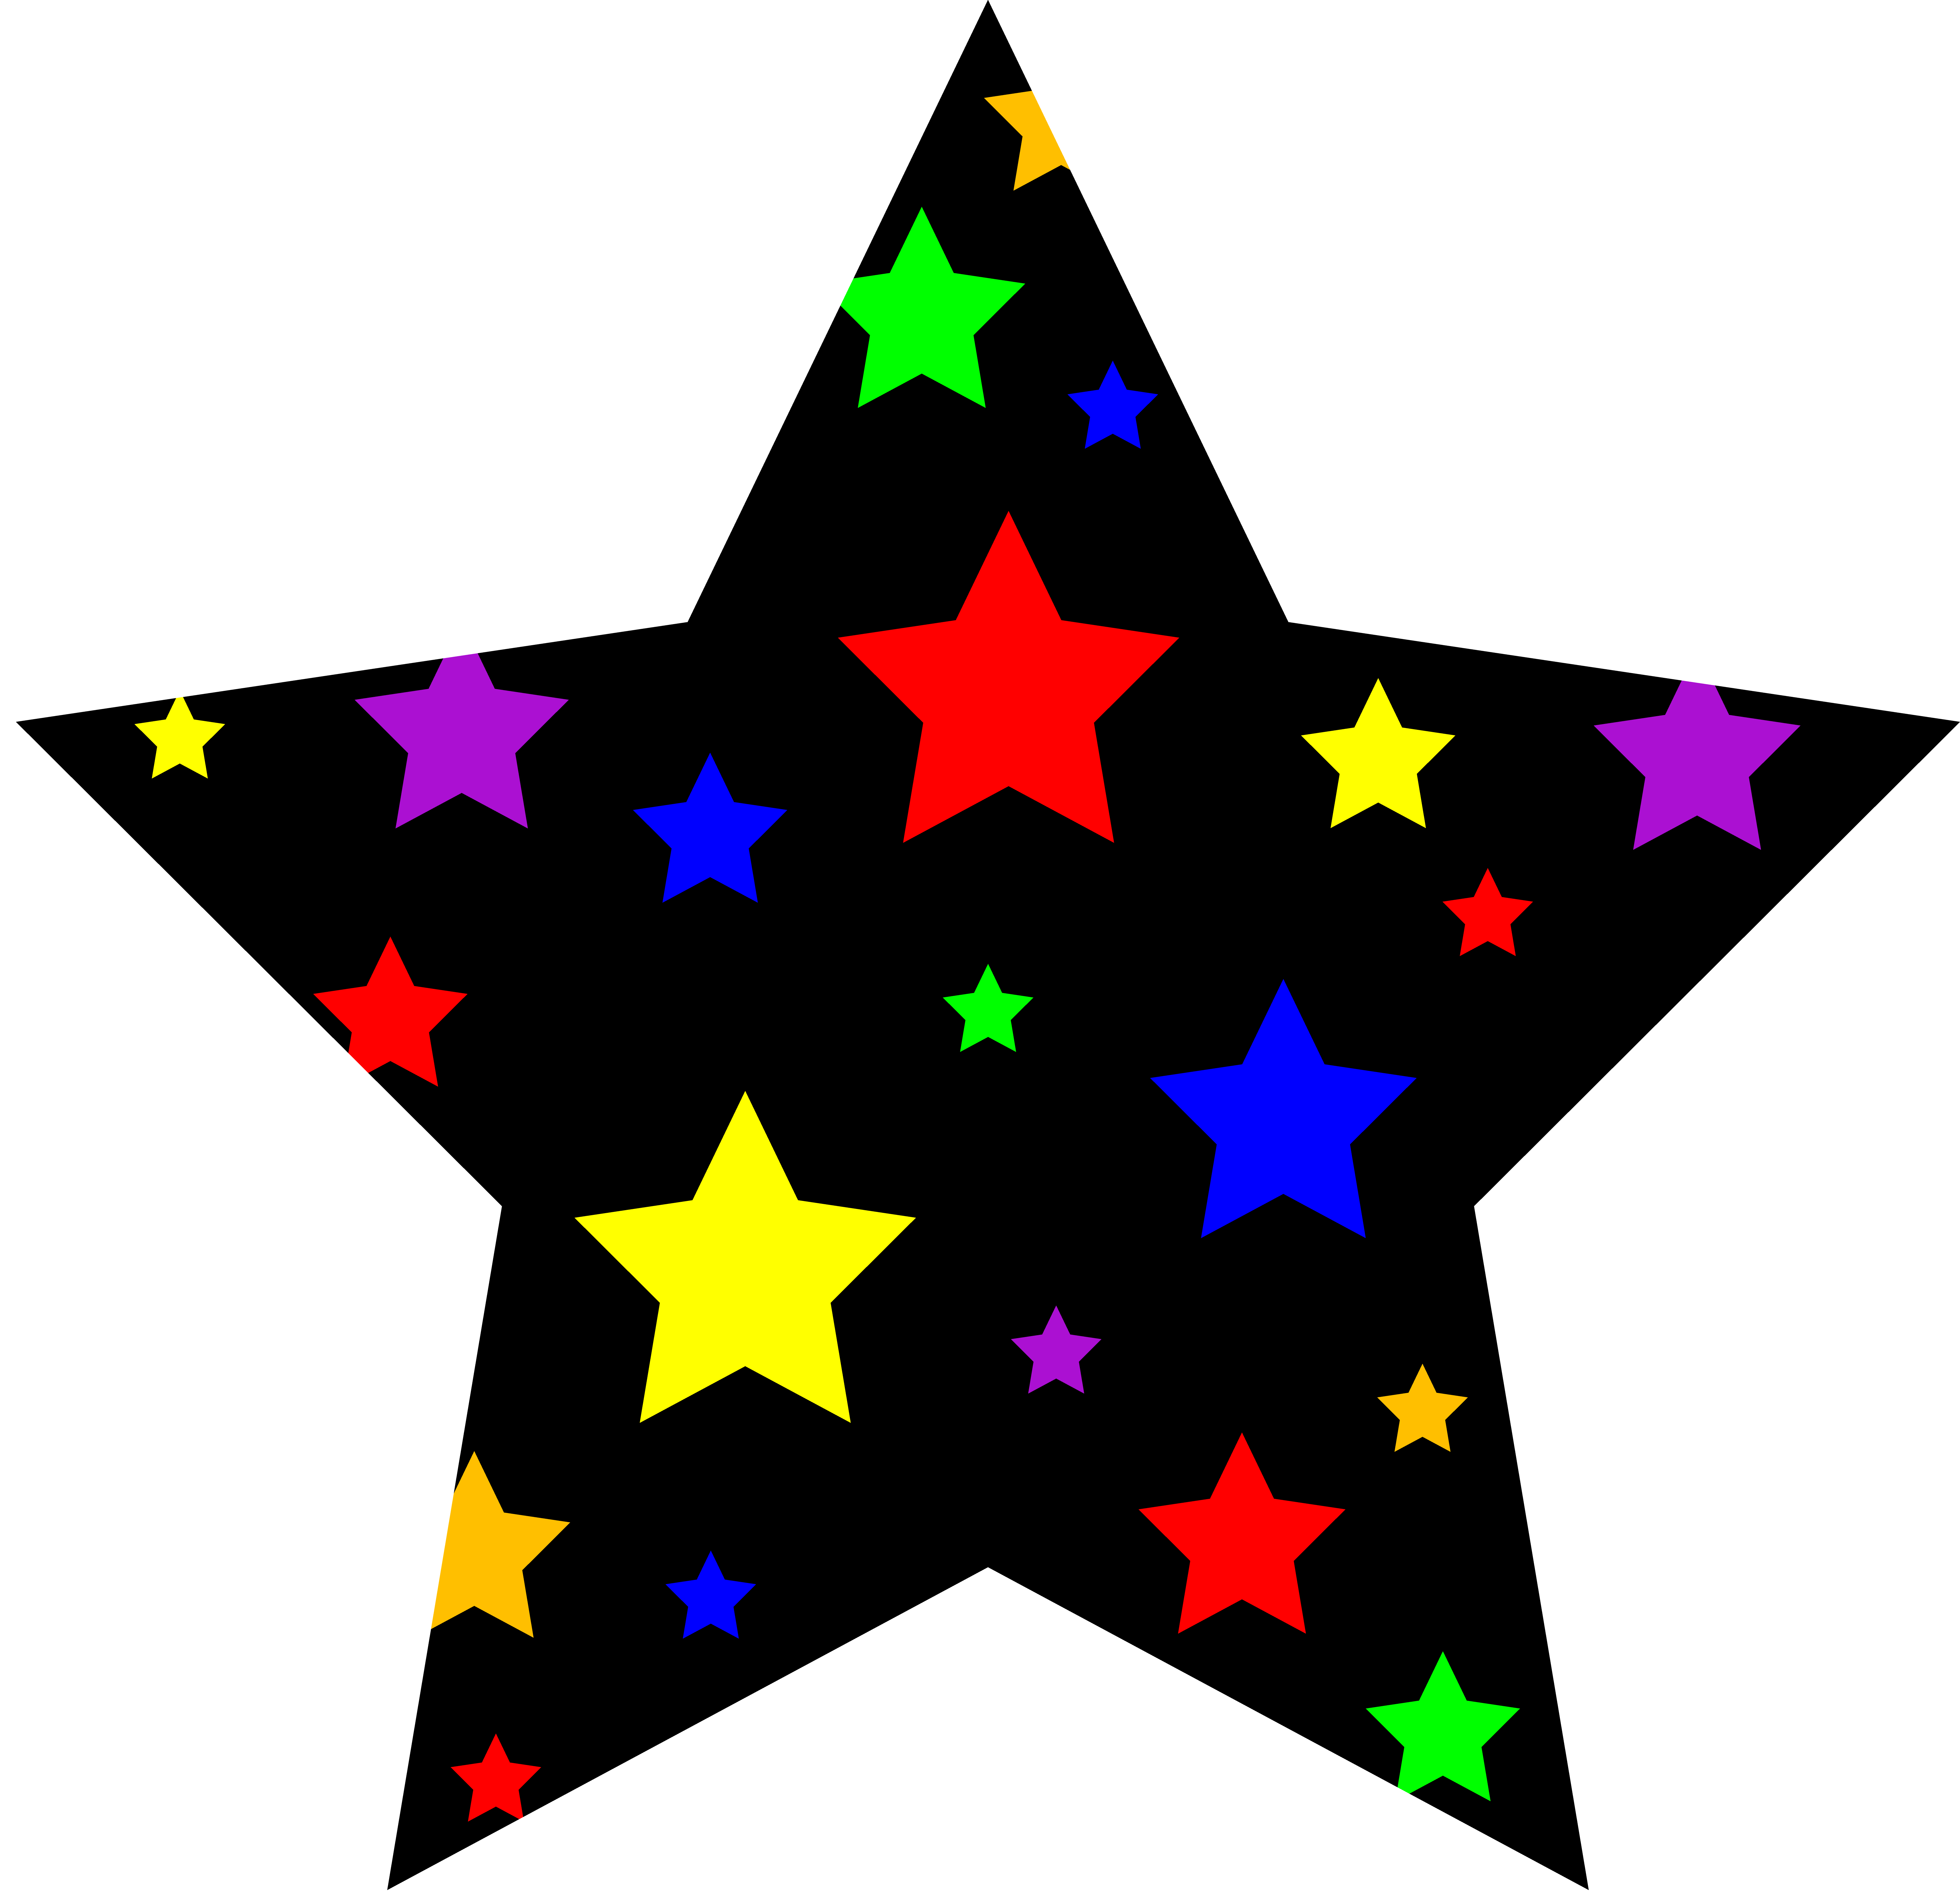 th july new. Star clip art shining star